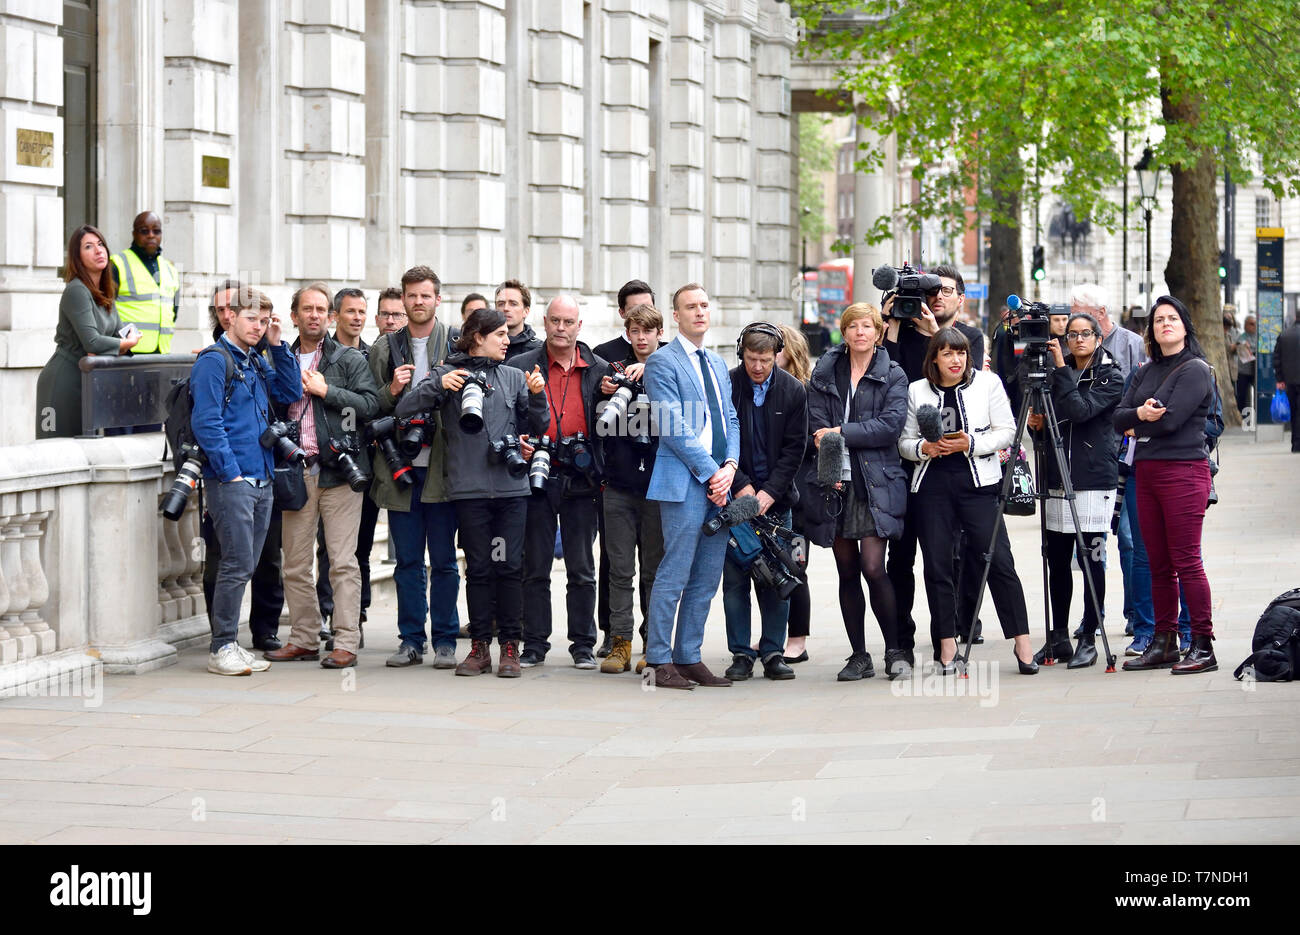 London, England, UK. Members of the media - photographers and TV crews, waiting outside the Cabinet Office in Whitehall for the arrival of Labour's Br Stock Photo